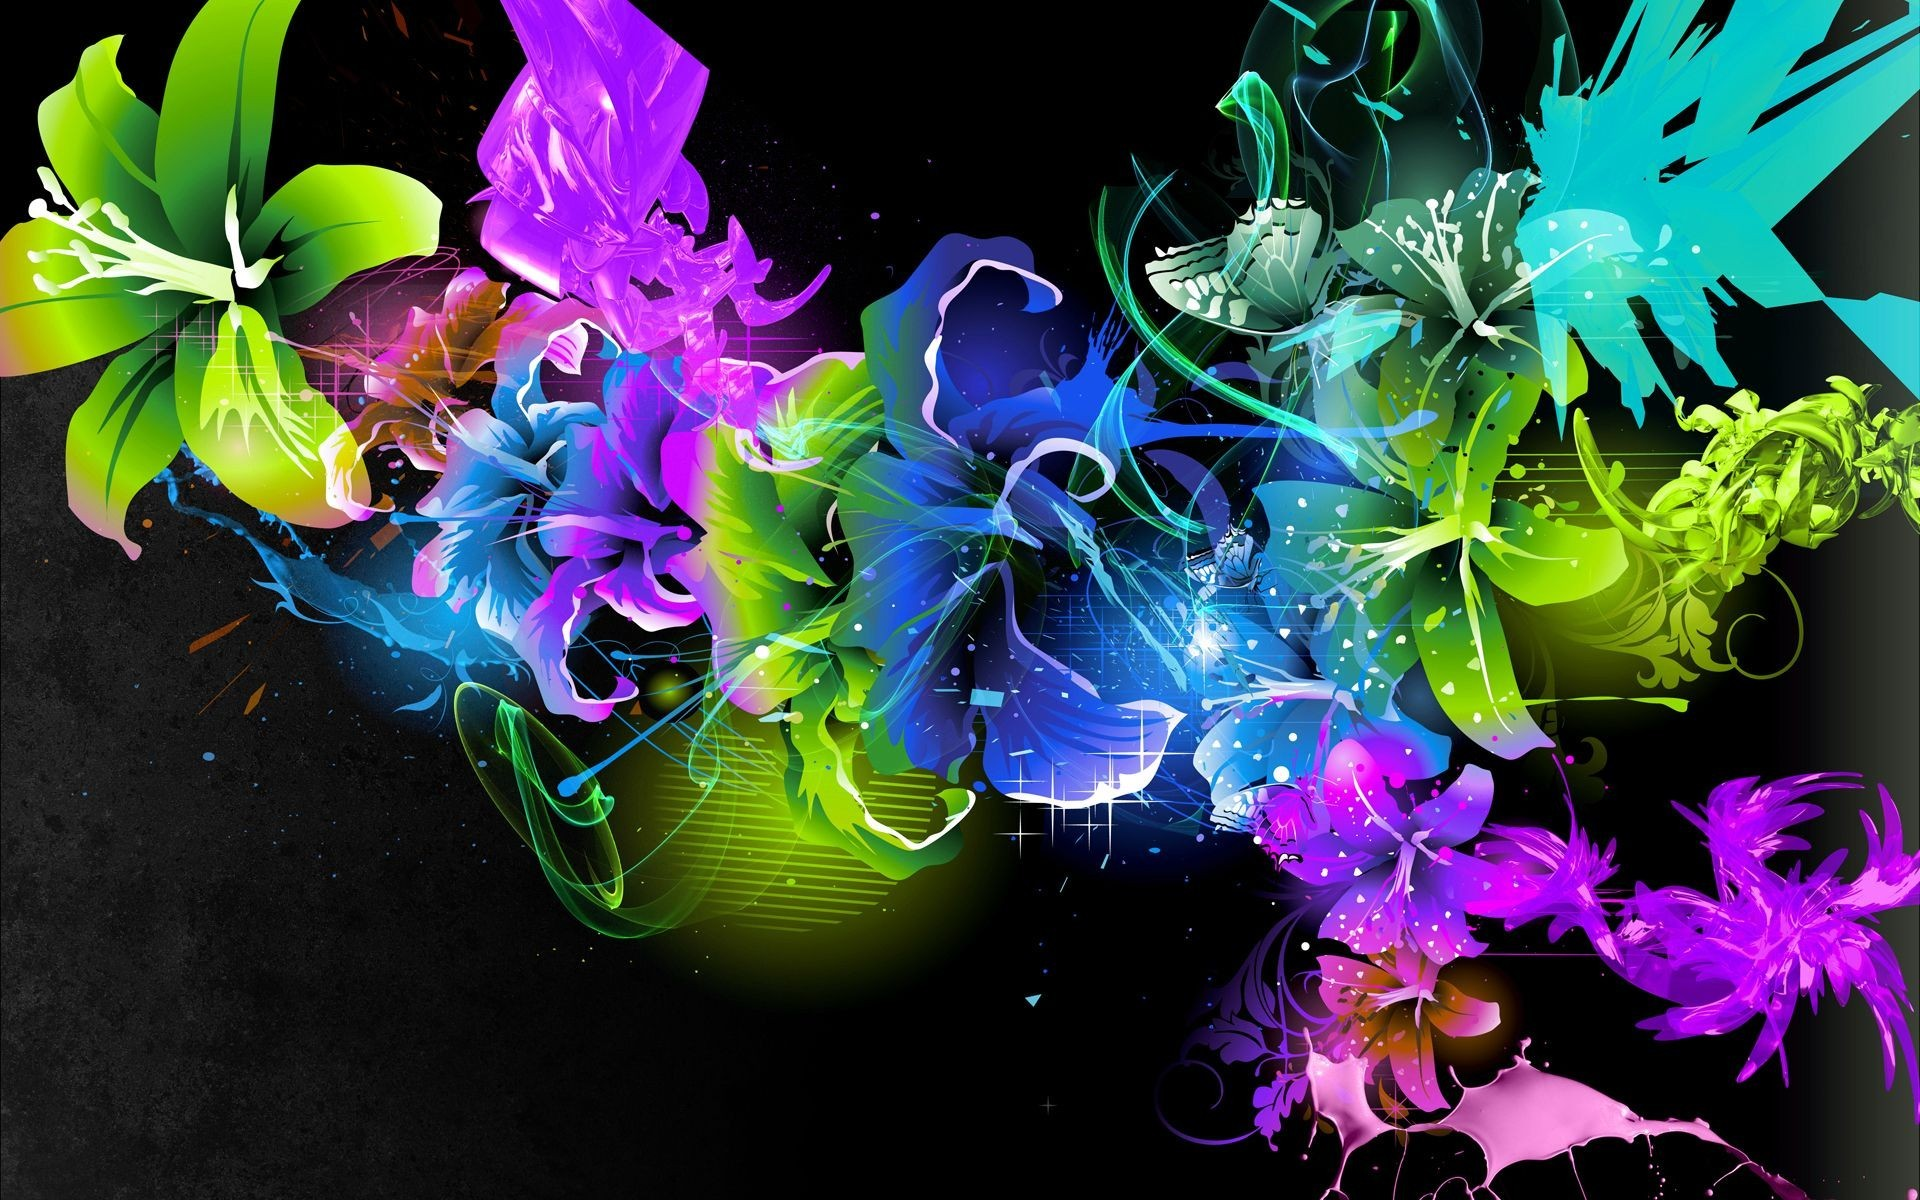 Free Download Abstract Wallpaper Background – Abstract Wallpaper Background  For Desktop. Please your visitedhttp: